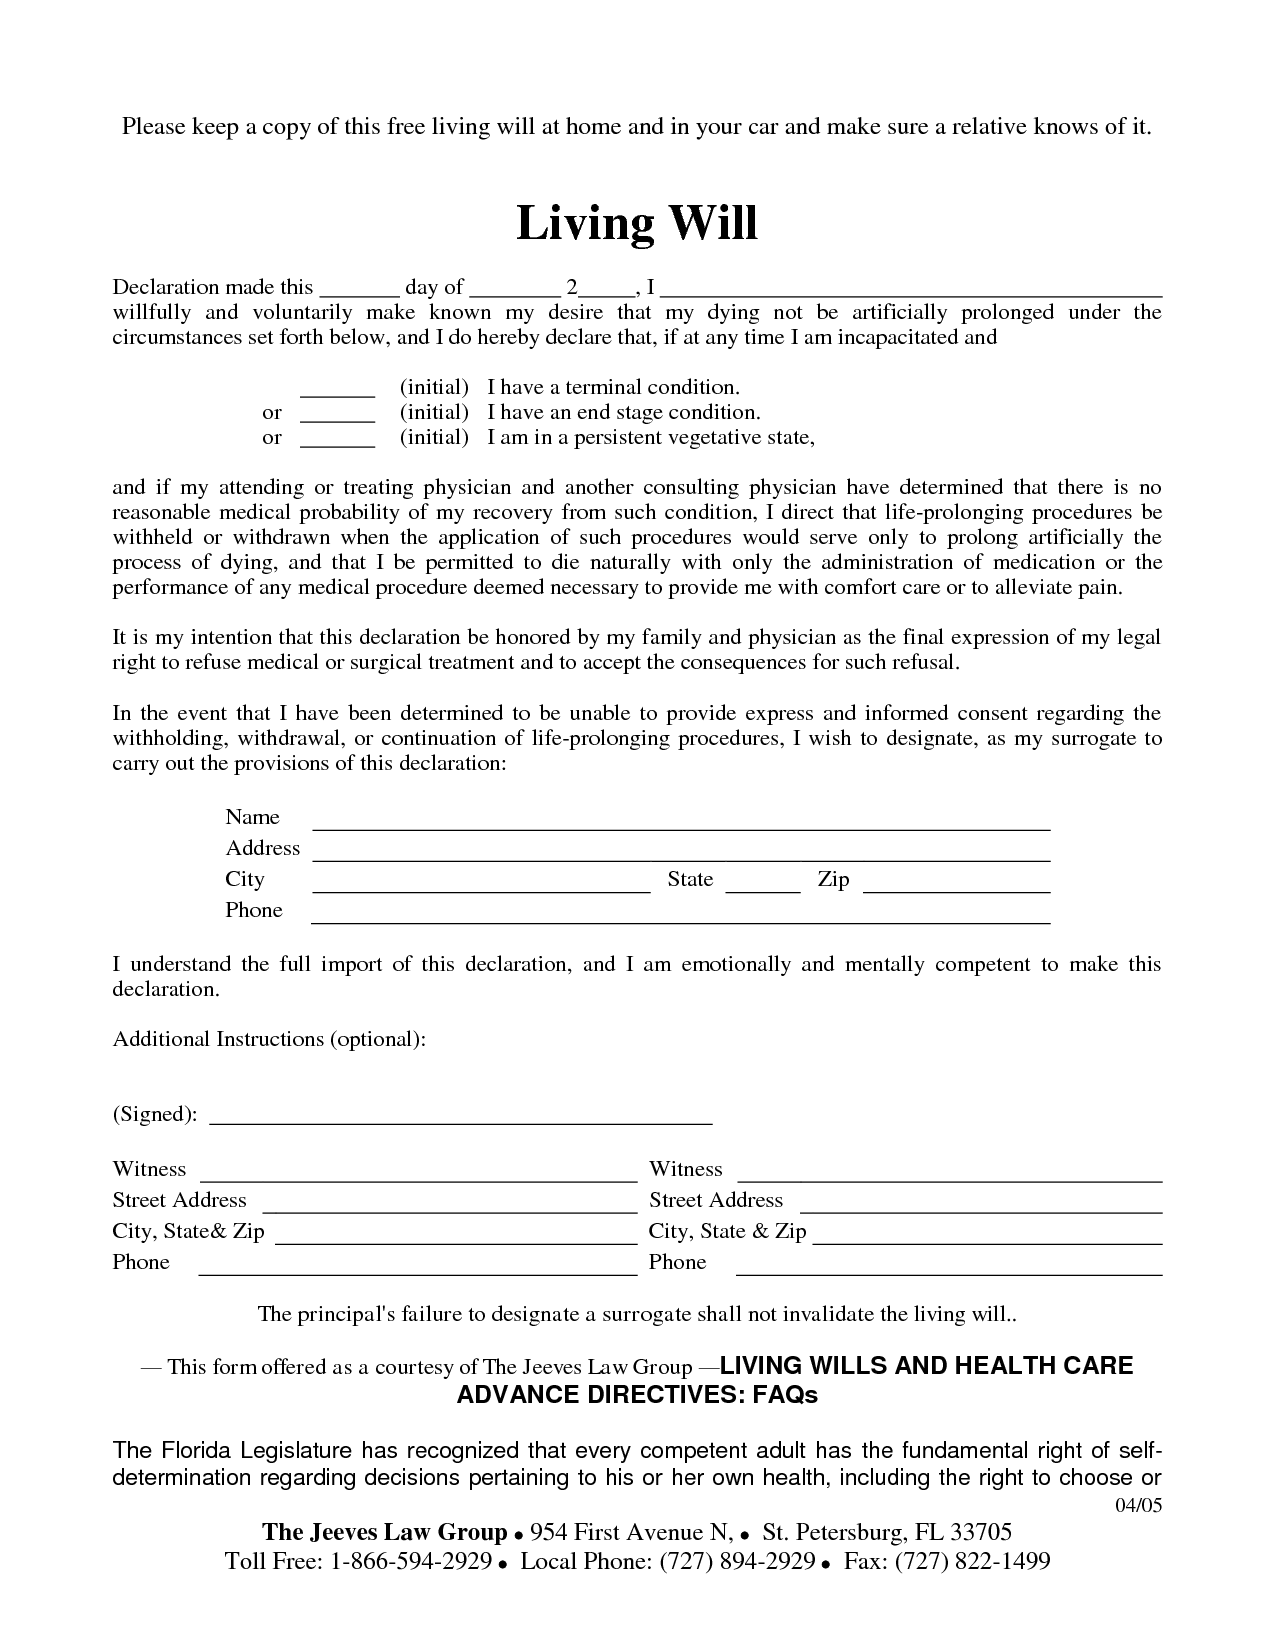 Living Will Form >> Free Copy Of Living Will By Richard Cataman Living Will Sample